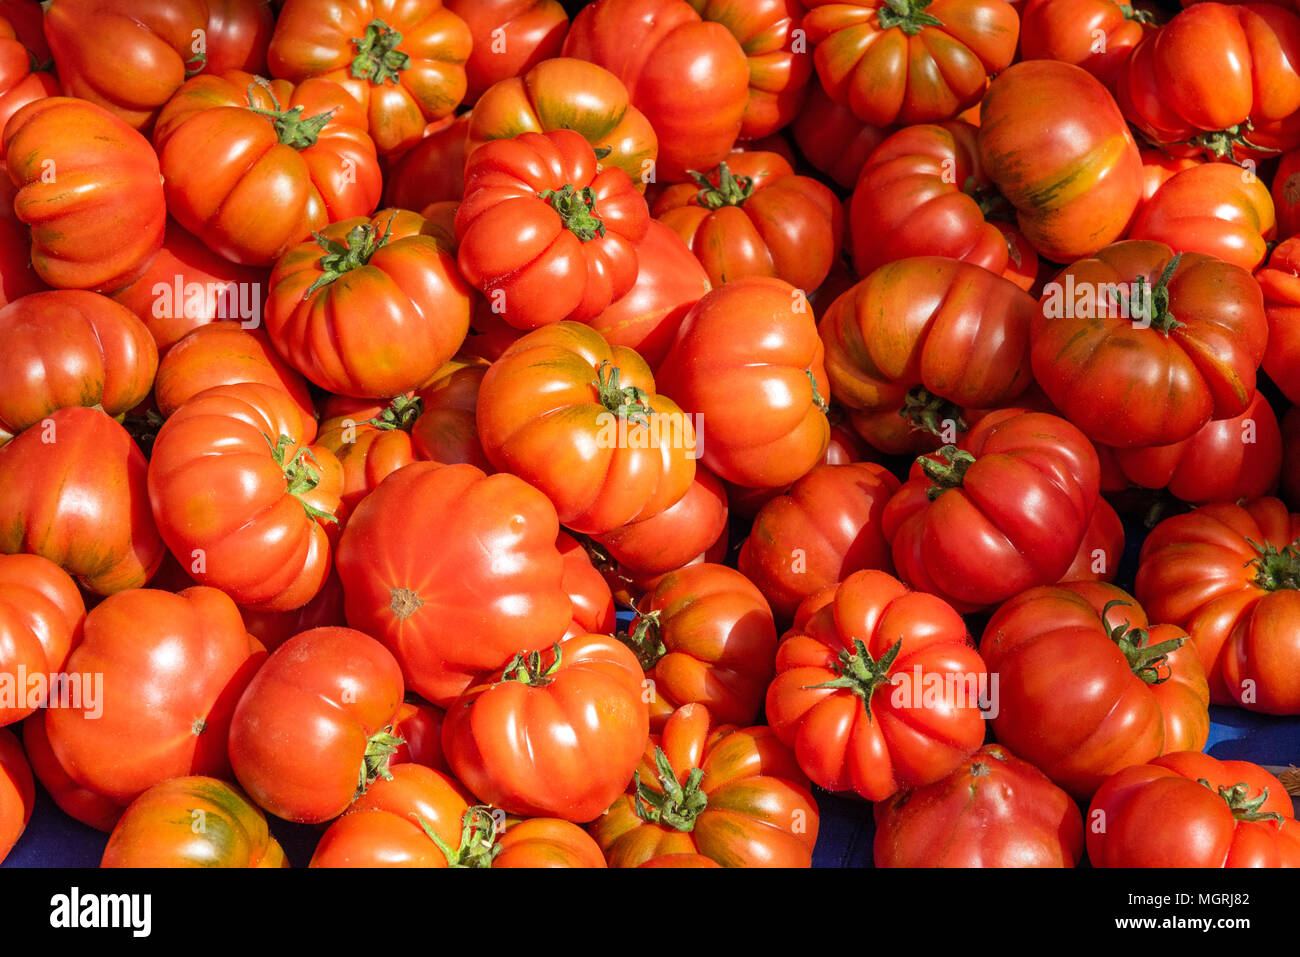 Ripped sicilian tomatoes for sale at a market - Stock Image